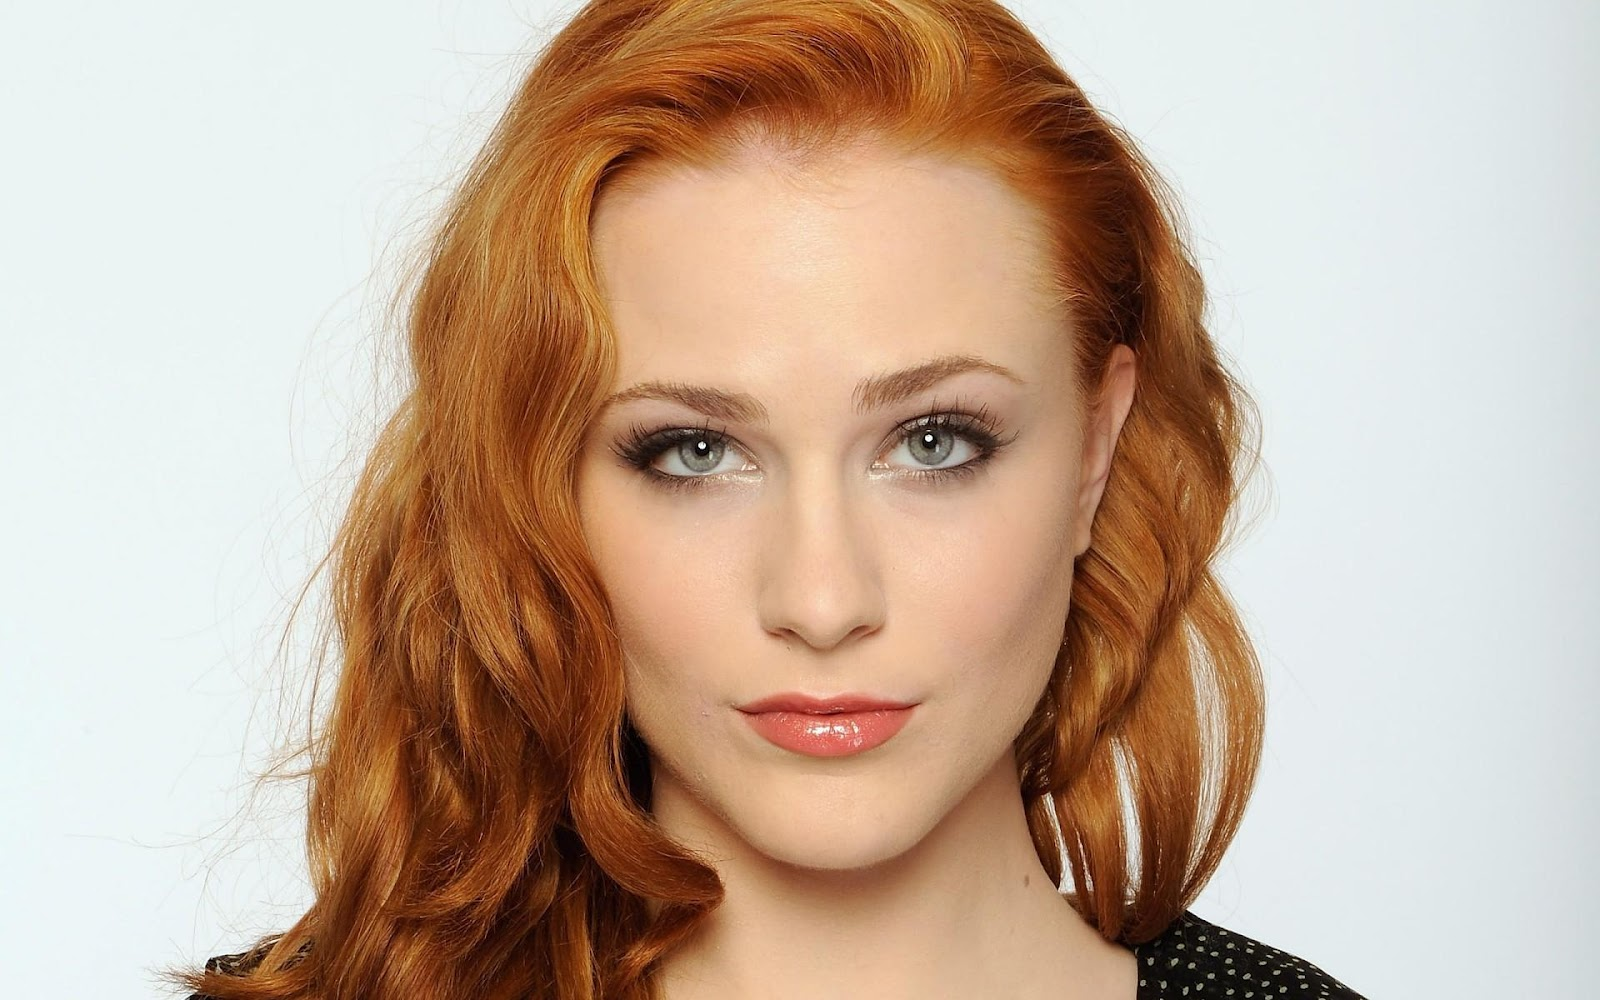 http://1.bp.blogspot.com/-okHUGKCfb7I/UG0mrc_MR8I/AAAAAAAAAHY/Ib_LVbcsSWk/s1600/women-closeup-redheads-evan-rachel-wood-faces-white-background-wide.jpg